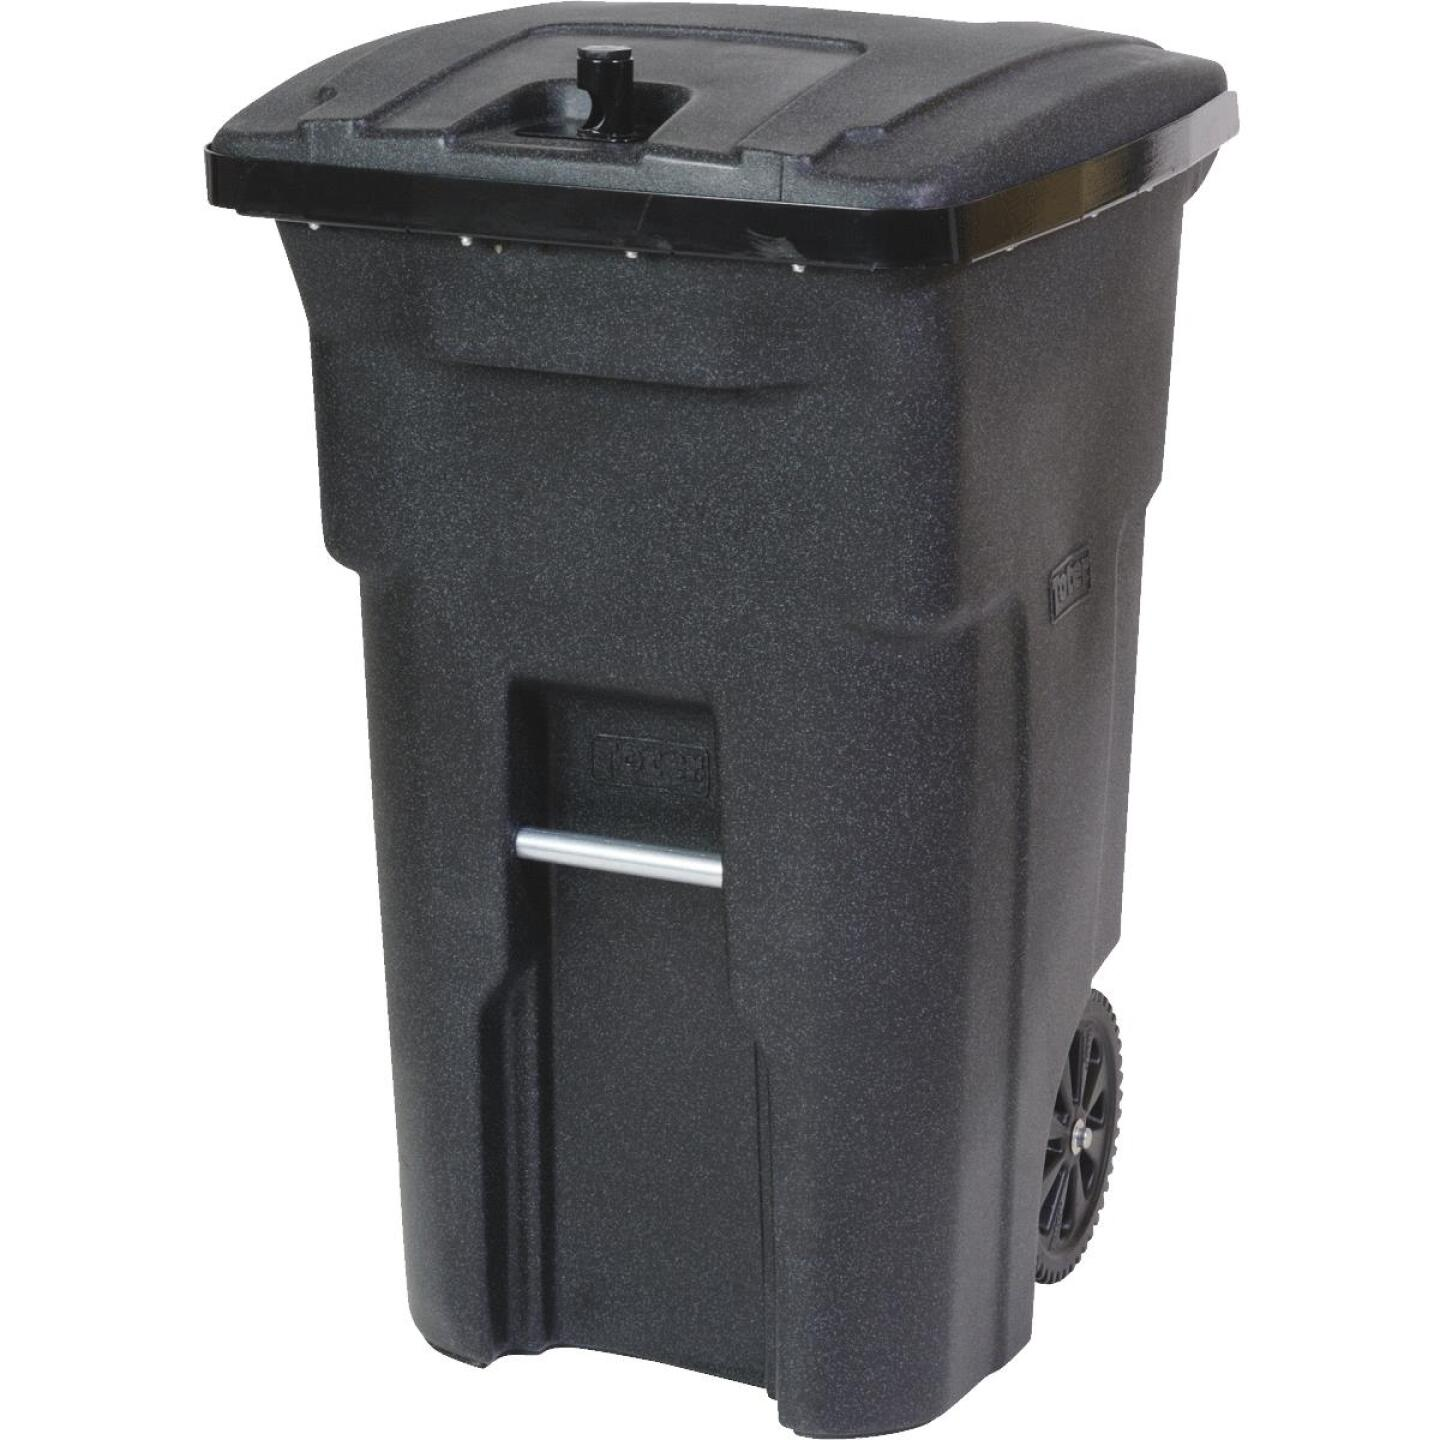 Toter 64 Gal. 2-Wheel Bear Tight Commercial Trash Can Image 1